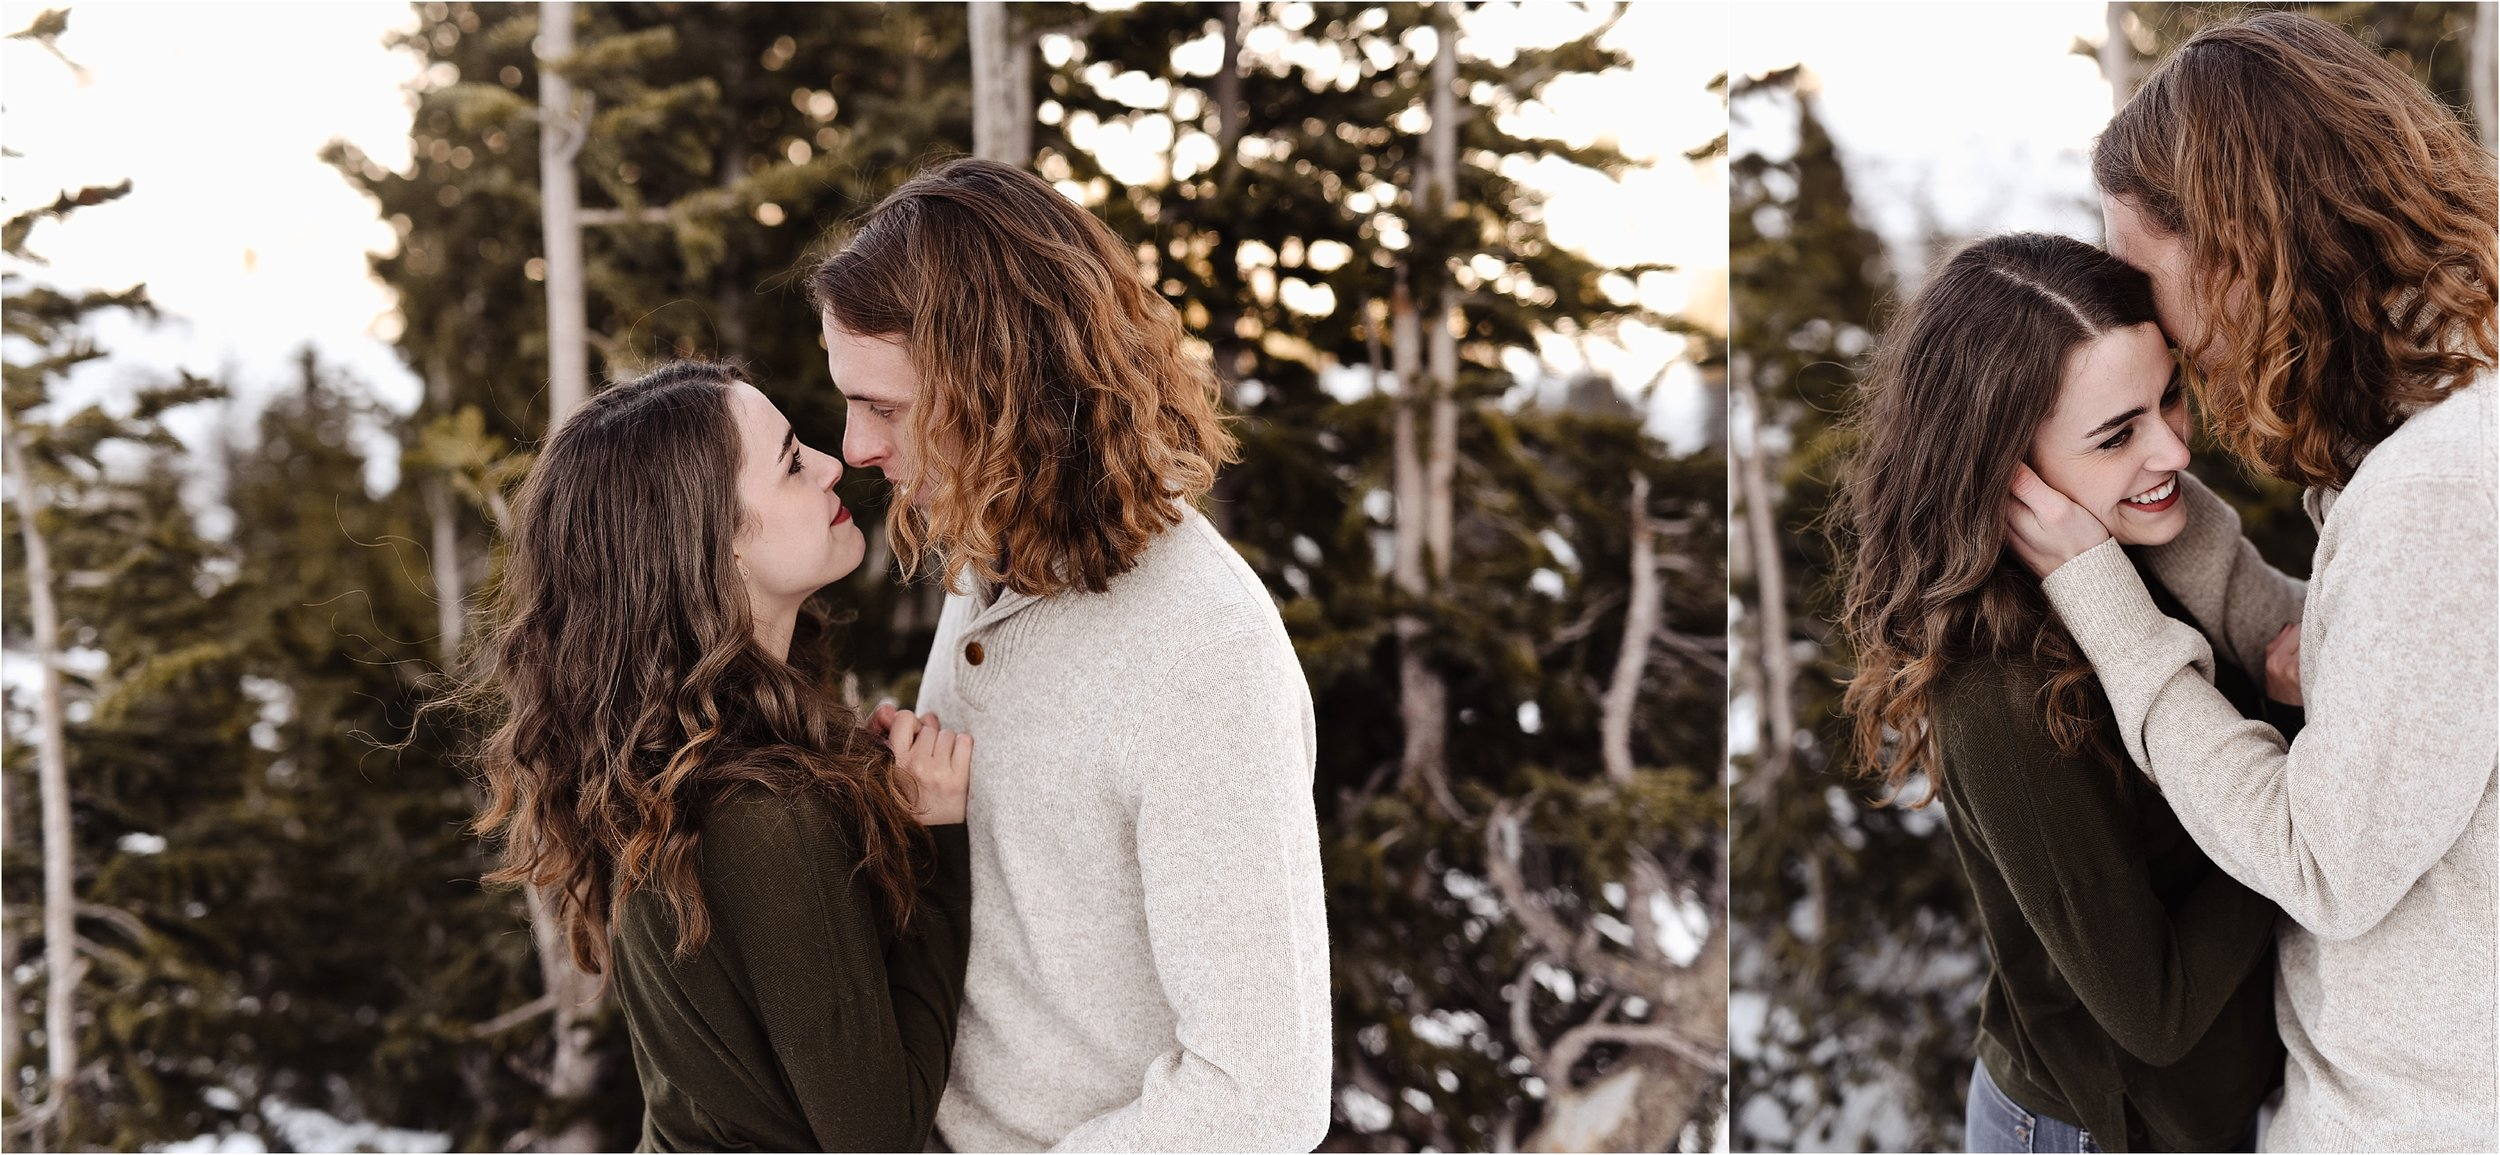 Loveland Pass, Colorado, Engagement Session Photos-1.jpg